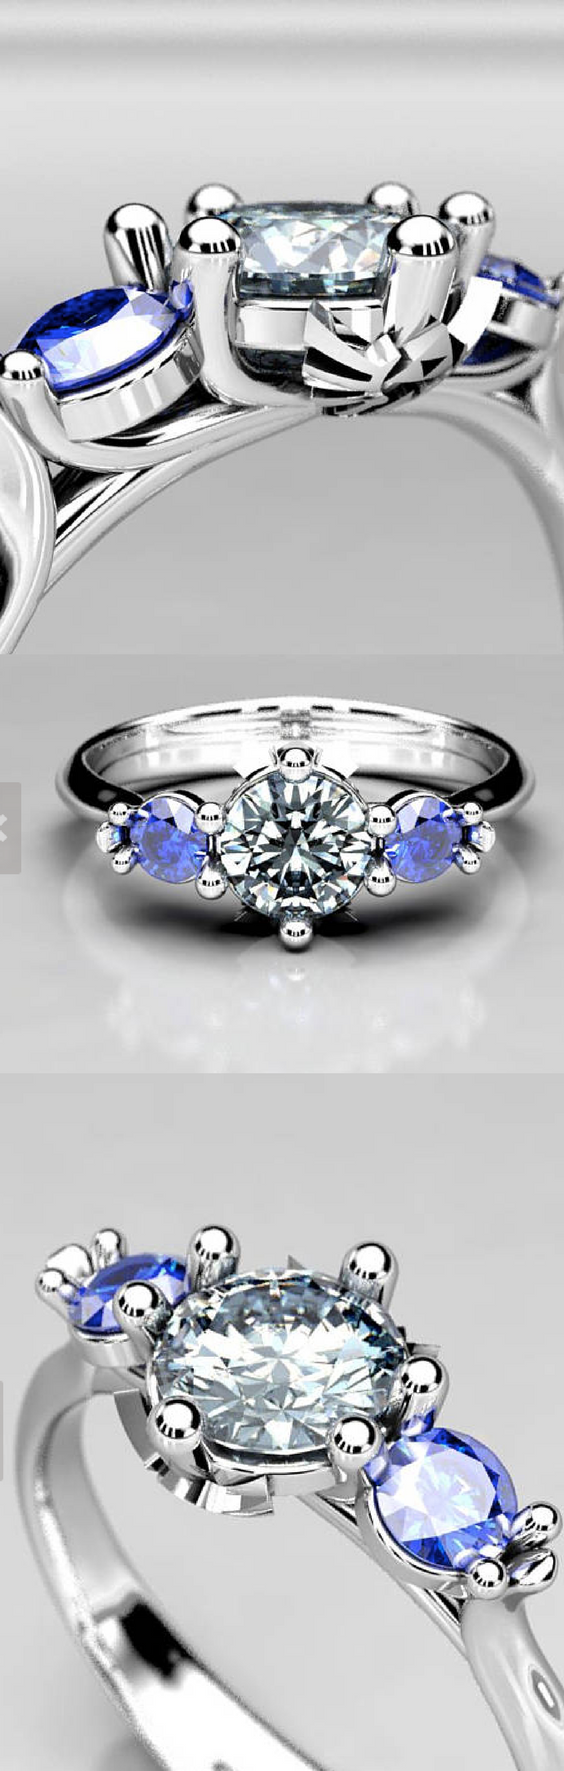 Zelda 3 Stone Forever One Moissanite and Chatham Sapphire Engagement Ring, Made in Gold or Palladium White Gold, Size 4.5 Geek Ring.png